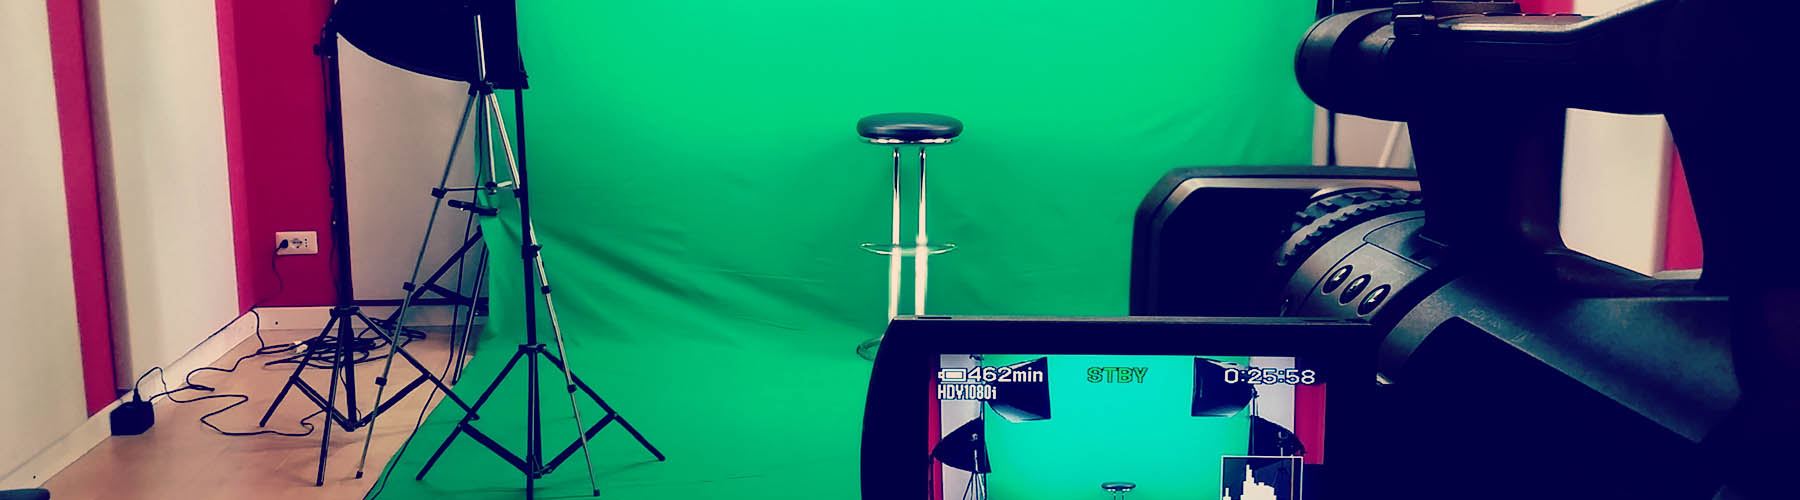 Video e-learning and video clips with chroma key